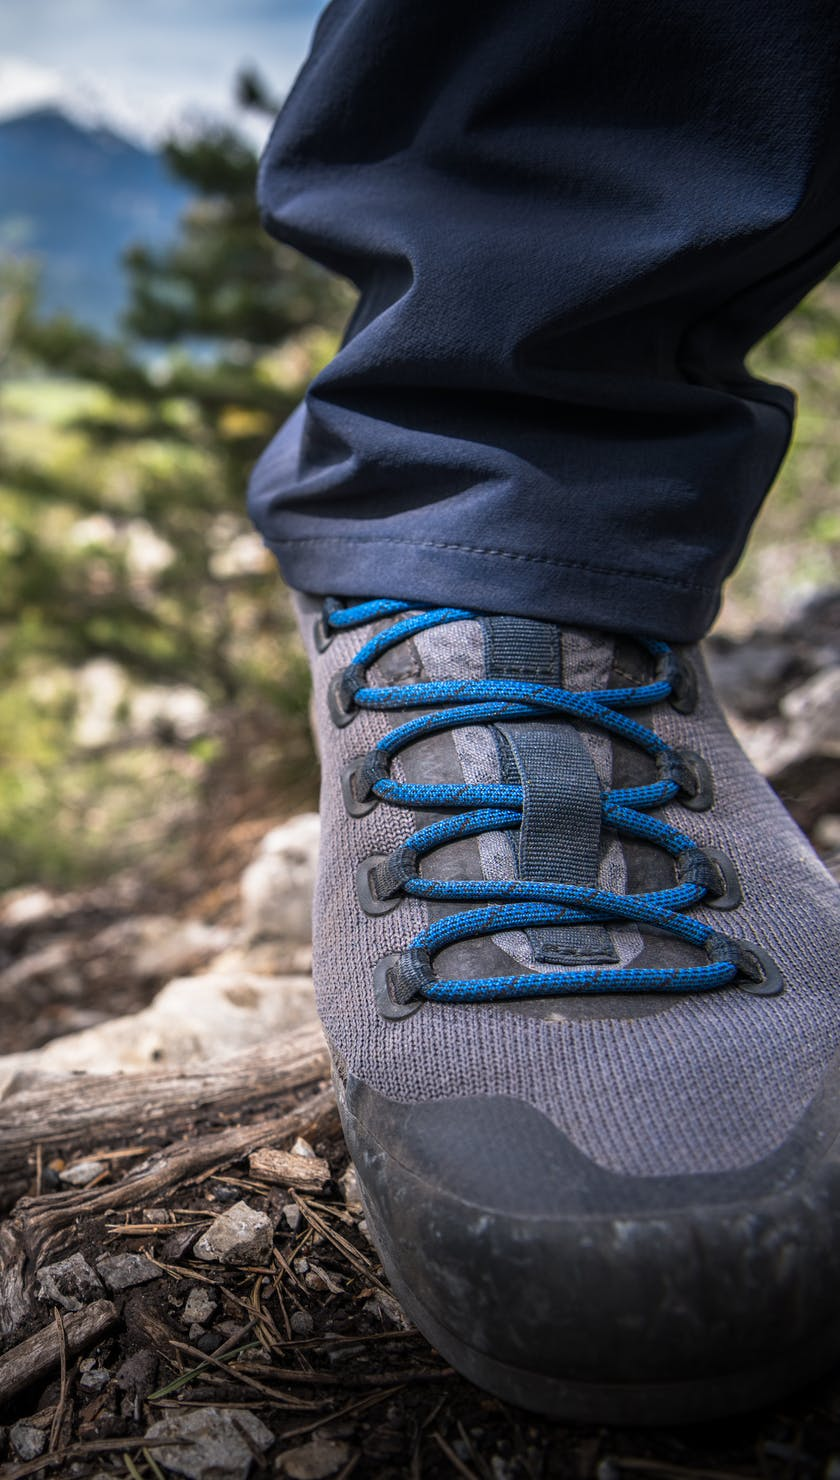 BD Approach shoes on a trail